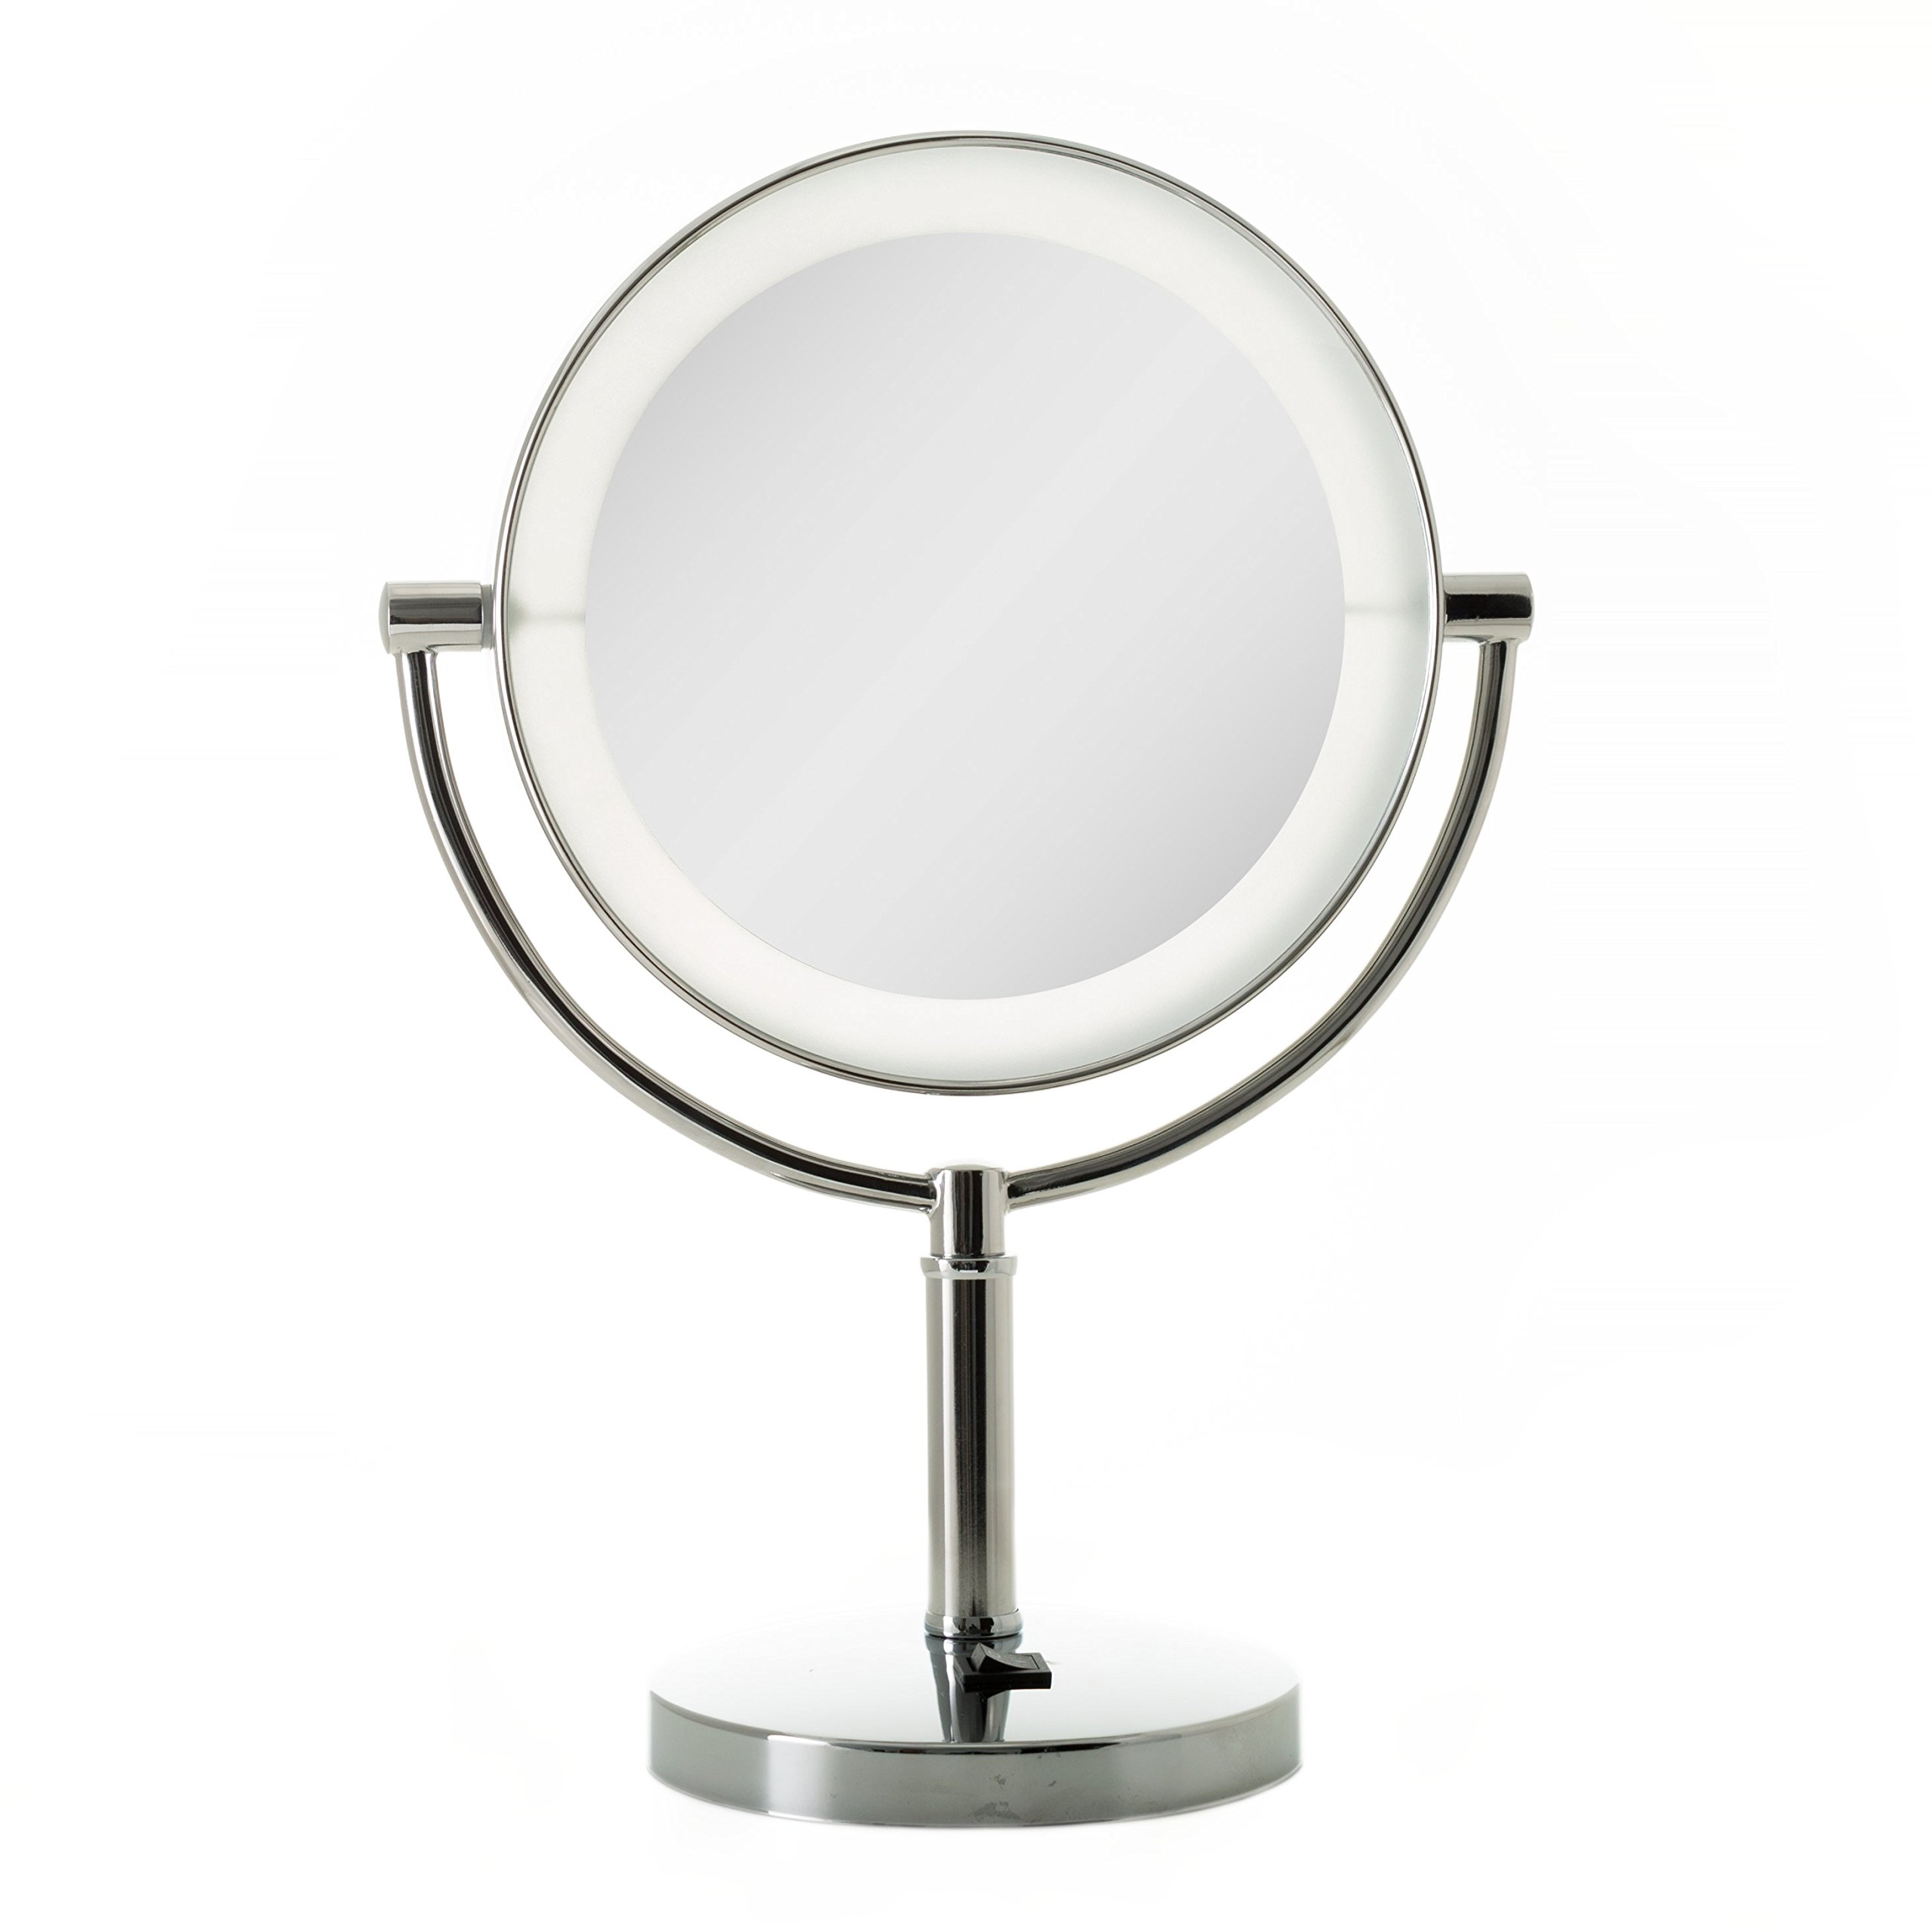 Zadro LED Lighted Vanity Make Up Mirror with 10X magnification in Chrome Finish.